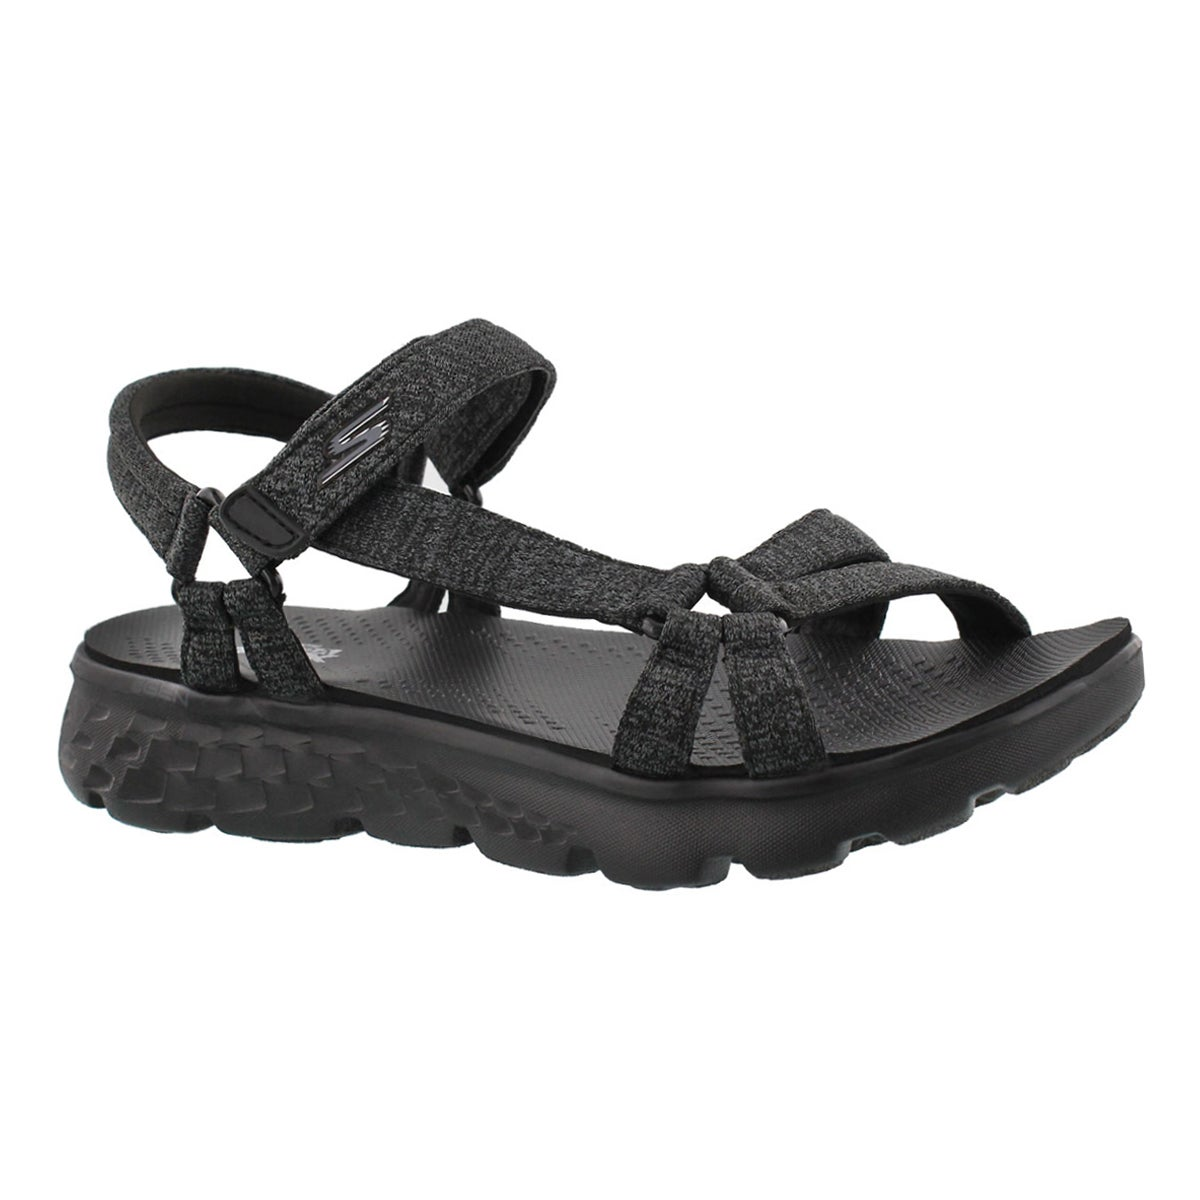 Women's ON-THE-GO 400 black/grey sport sandals